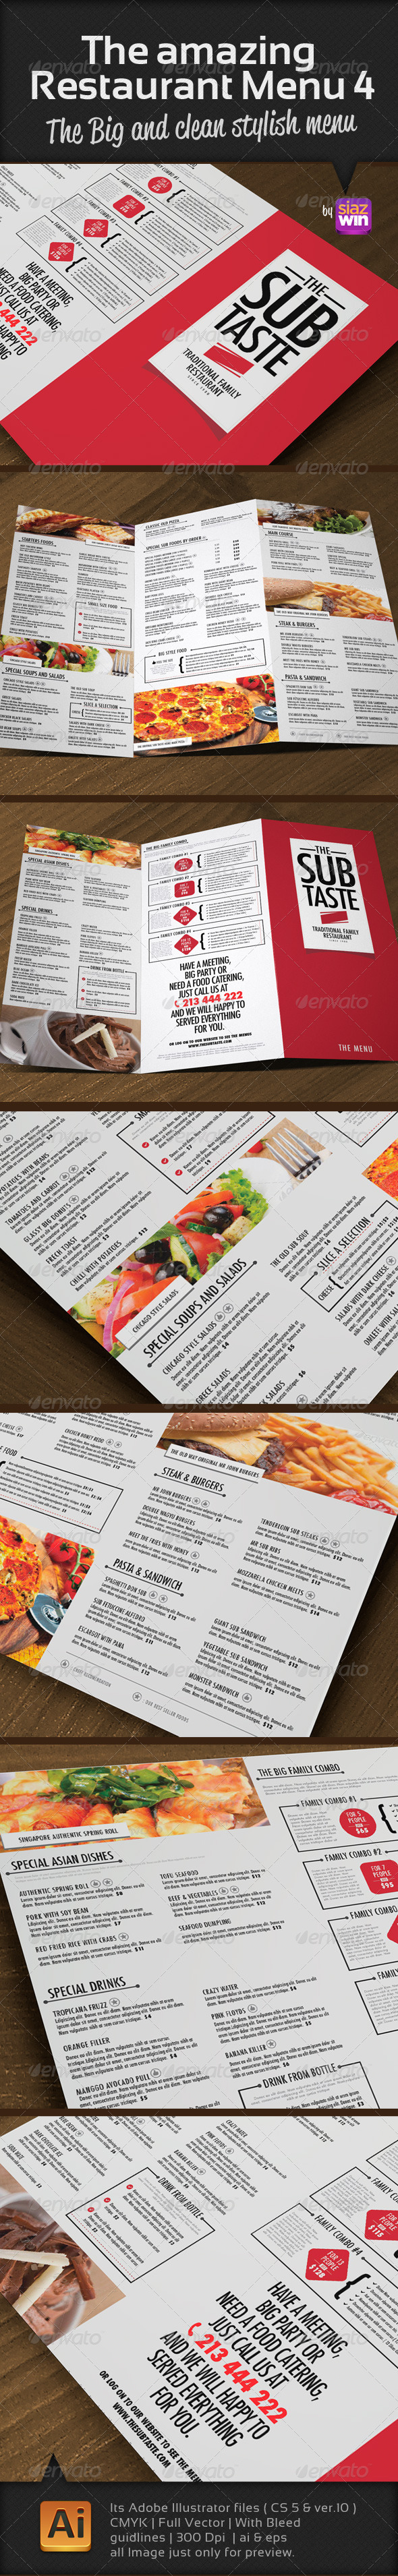 GraphicRiver The Amazing Restaurant Menu 4 3510255